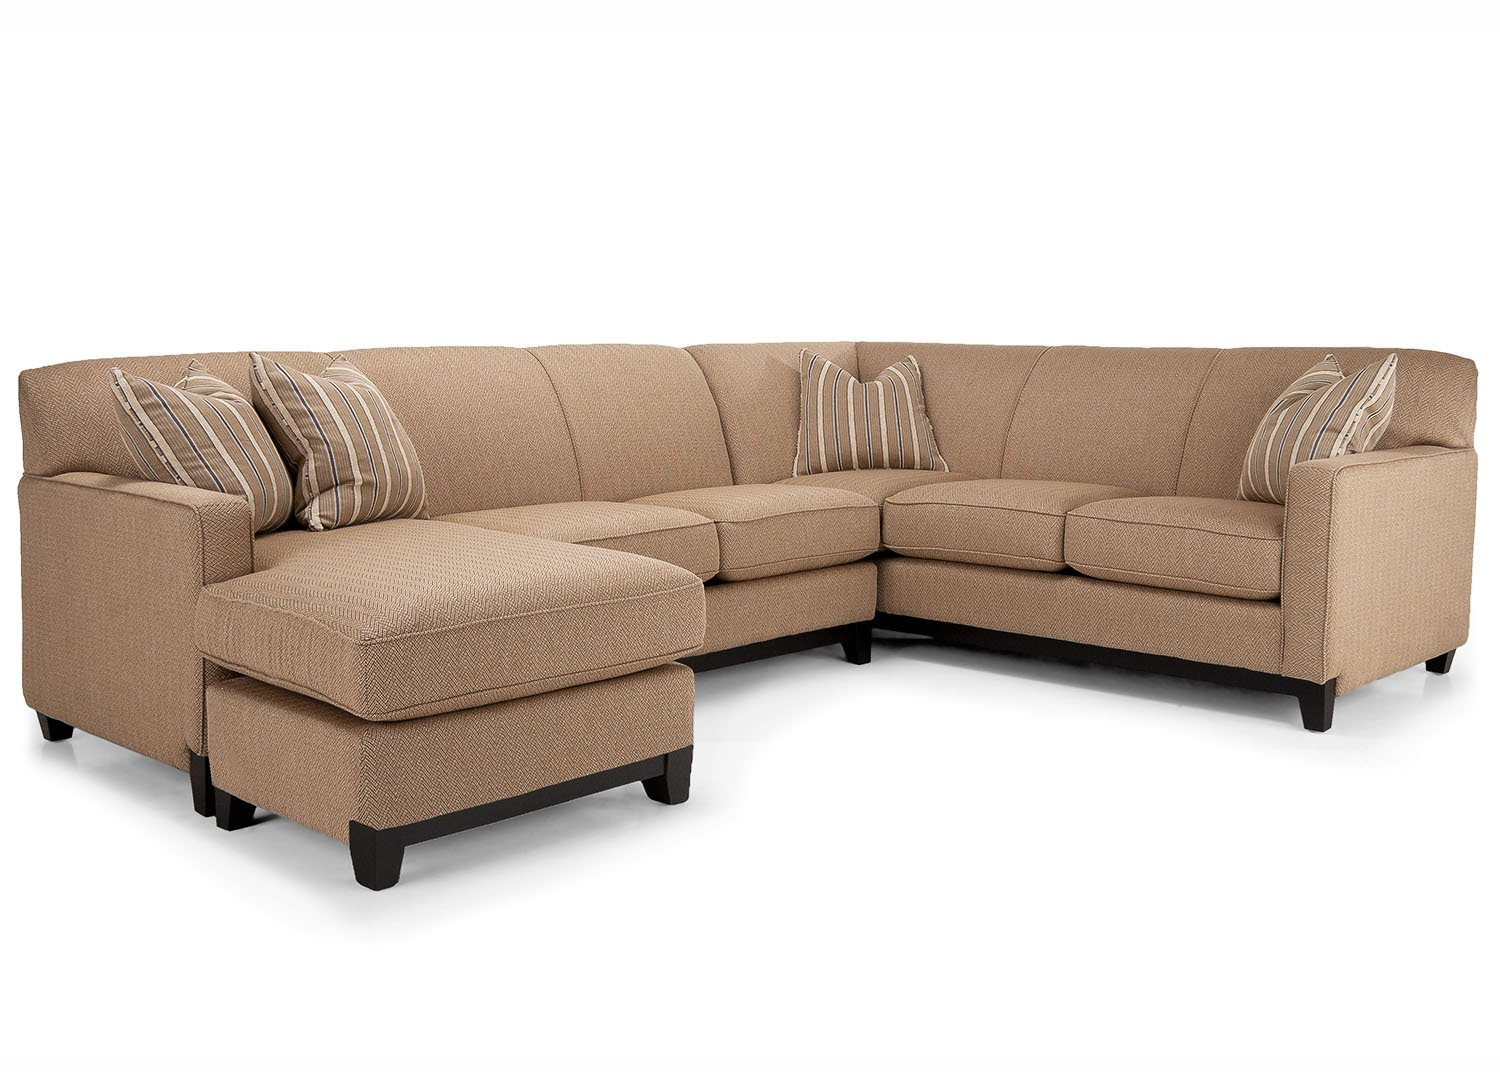 Miami Sectional Sofa | Mobilart Decor High End Furniture